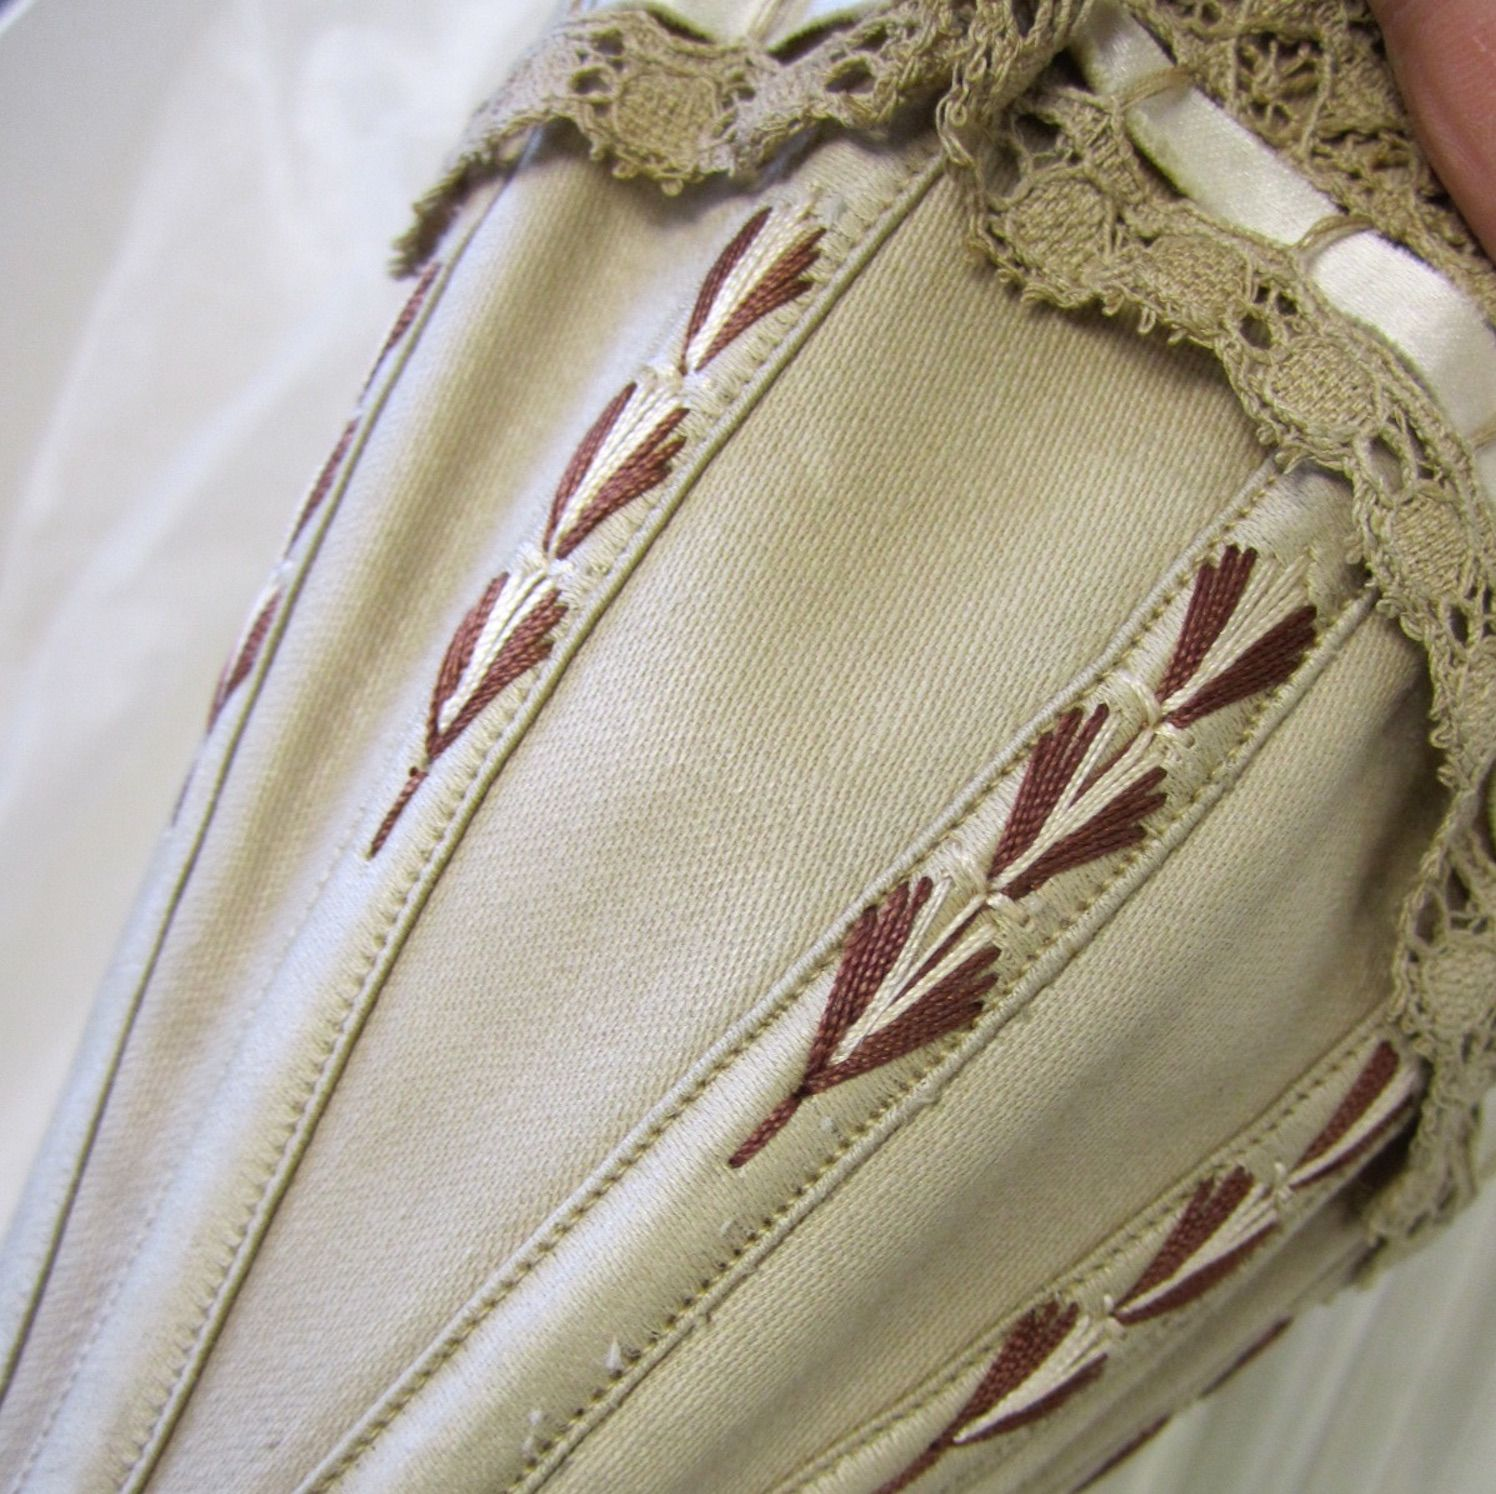 corset flossing on an antique victorian corset